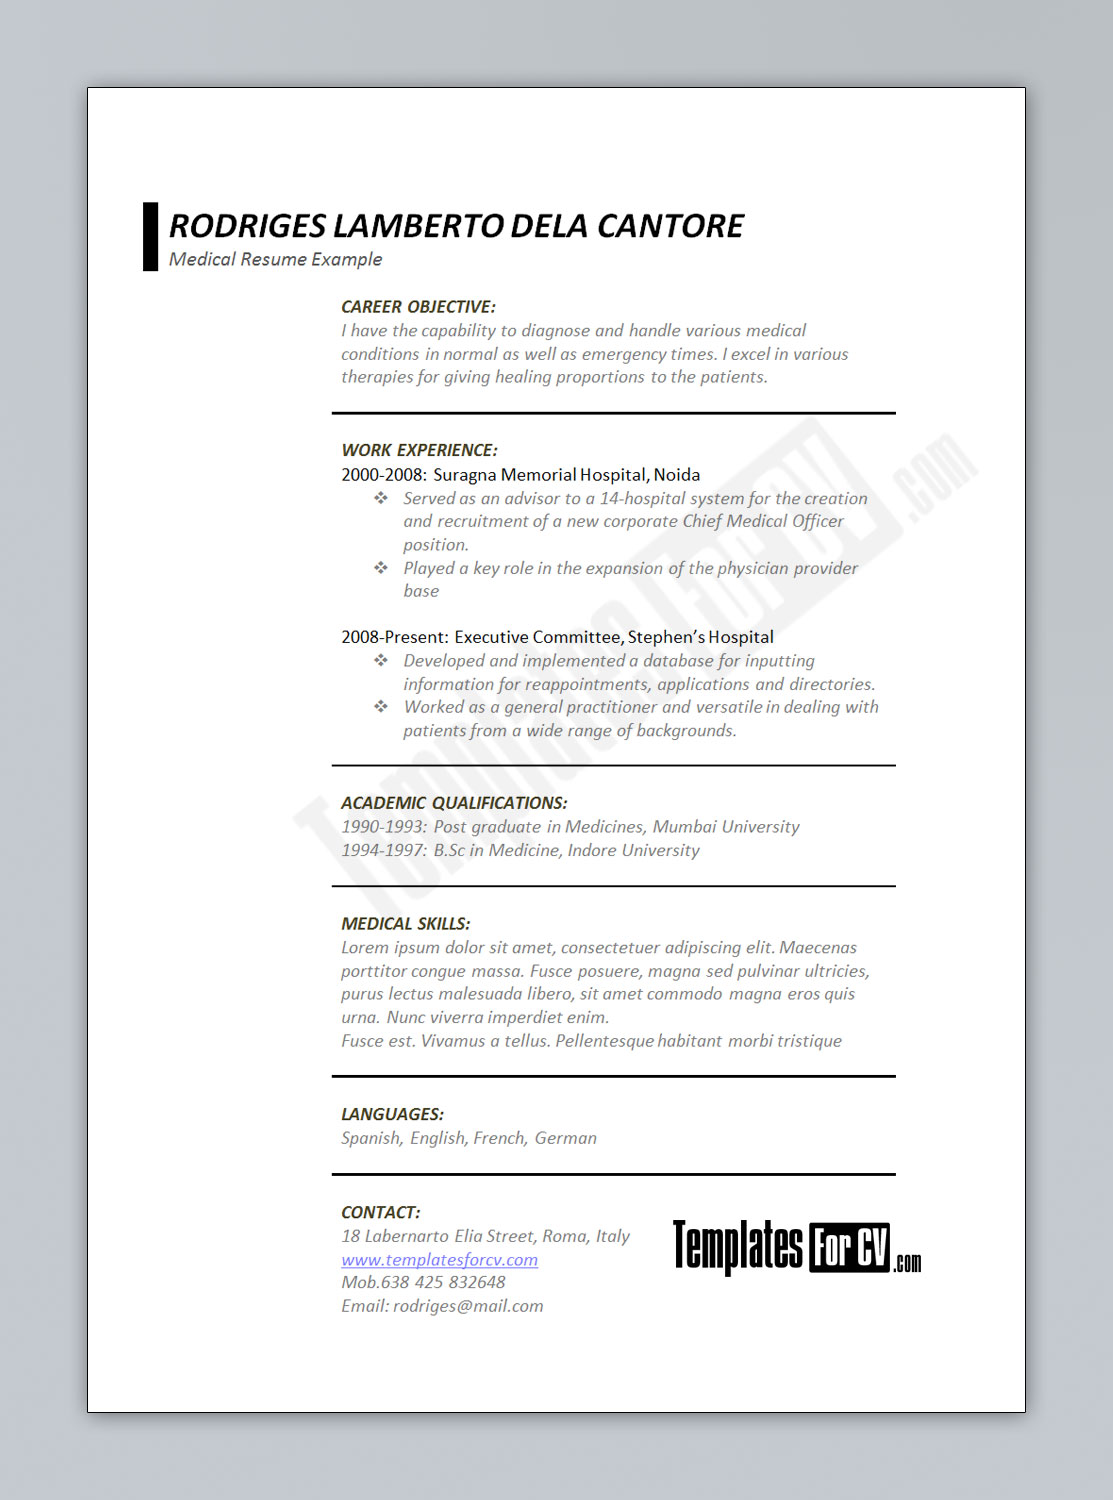 Templates For CV  Medical Resume Template